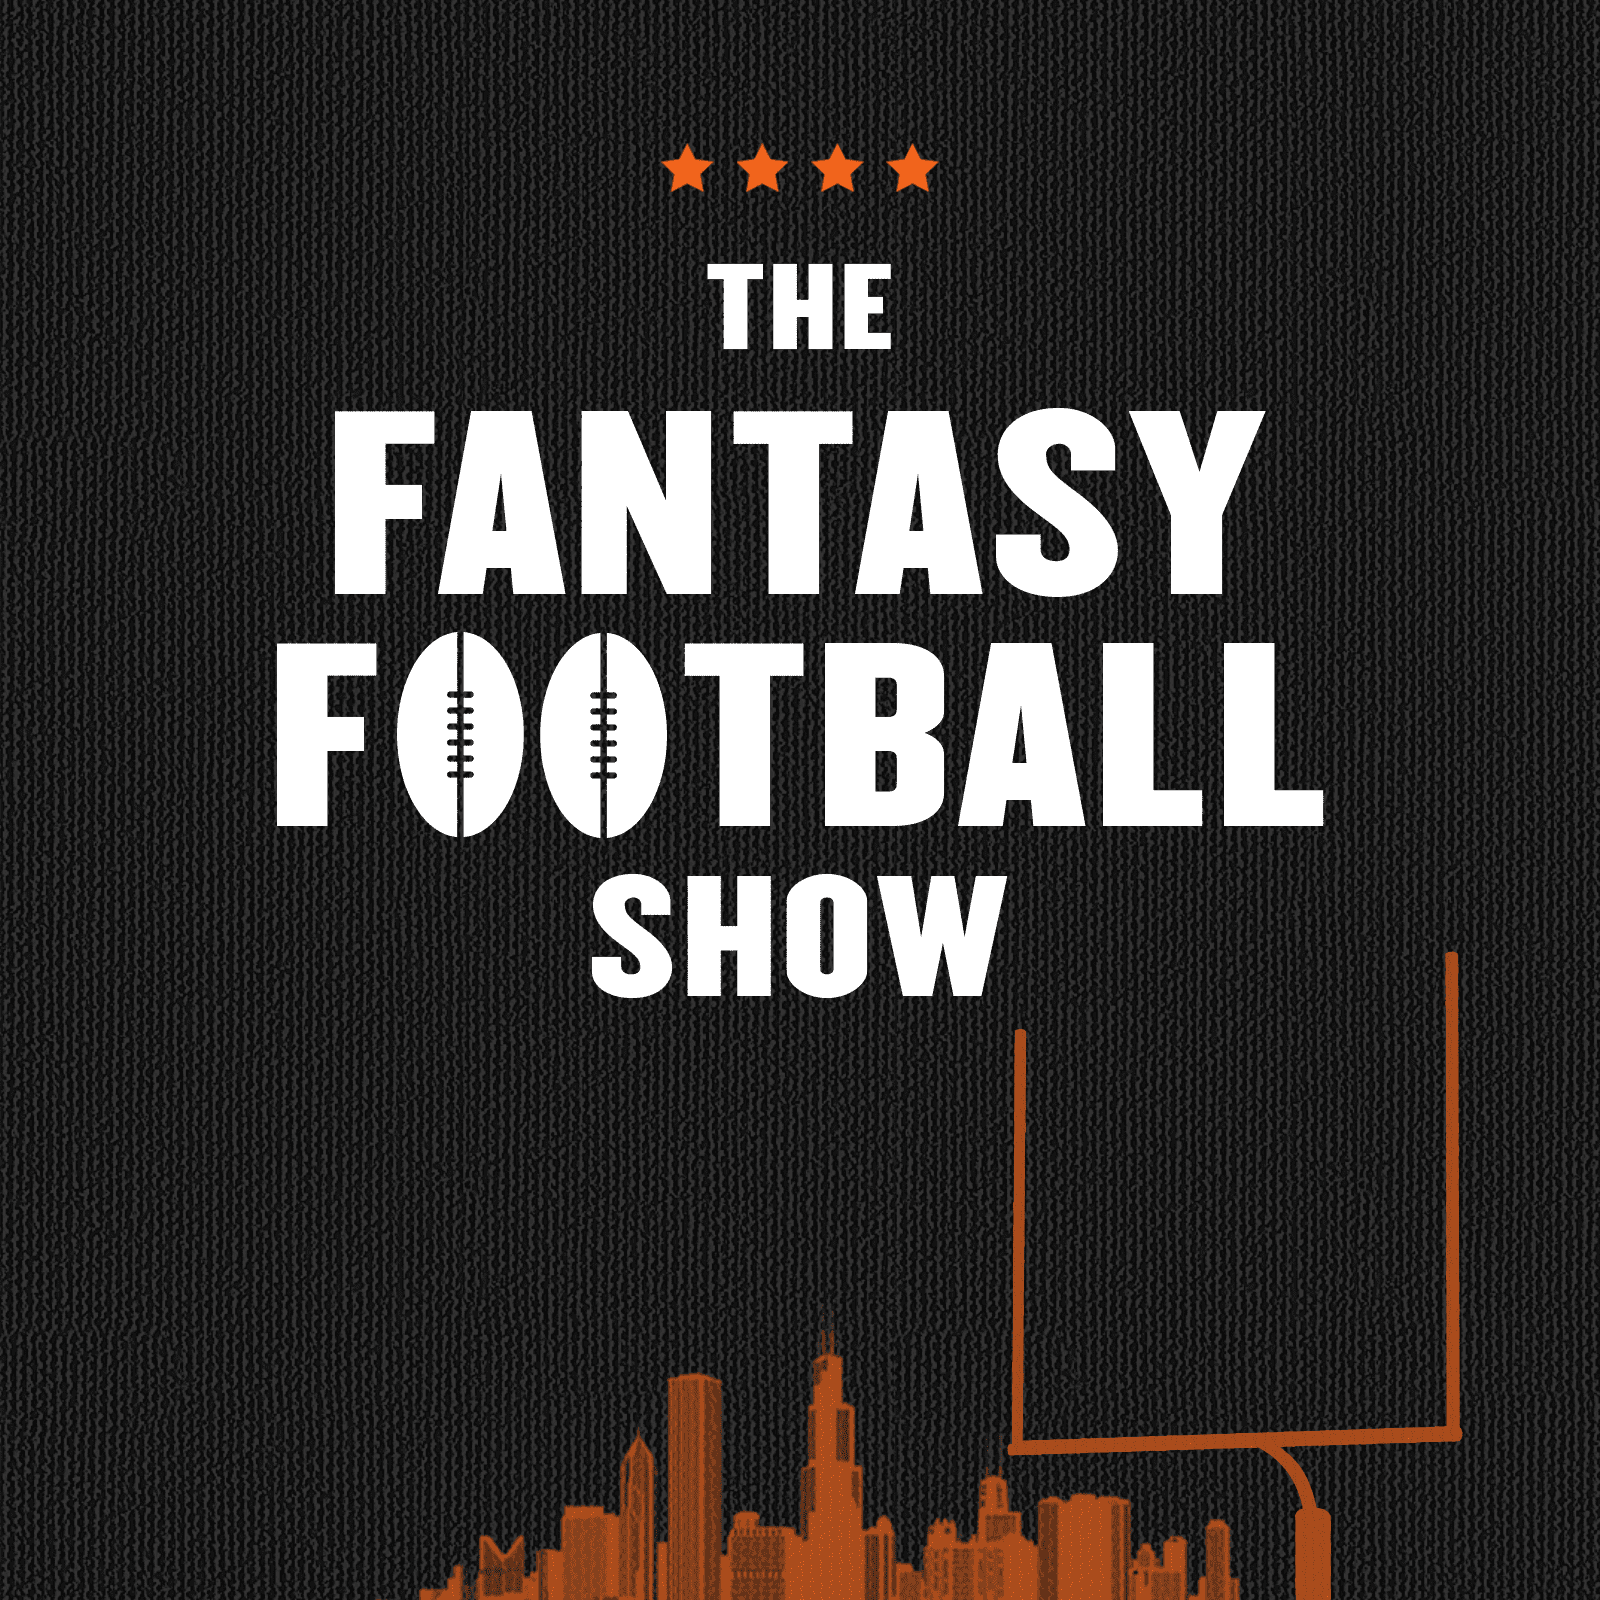 The Fantasy Football Show